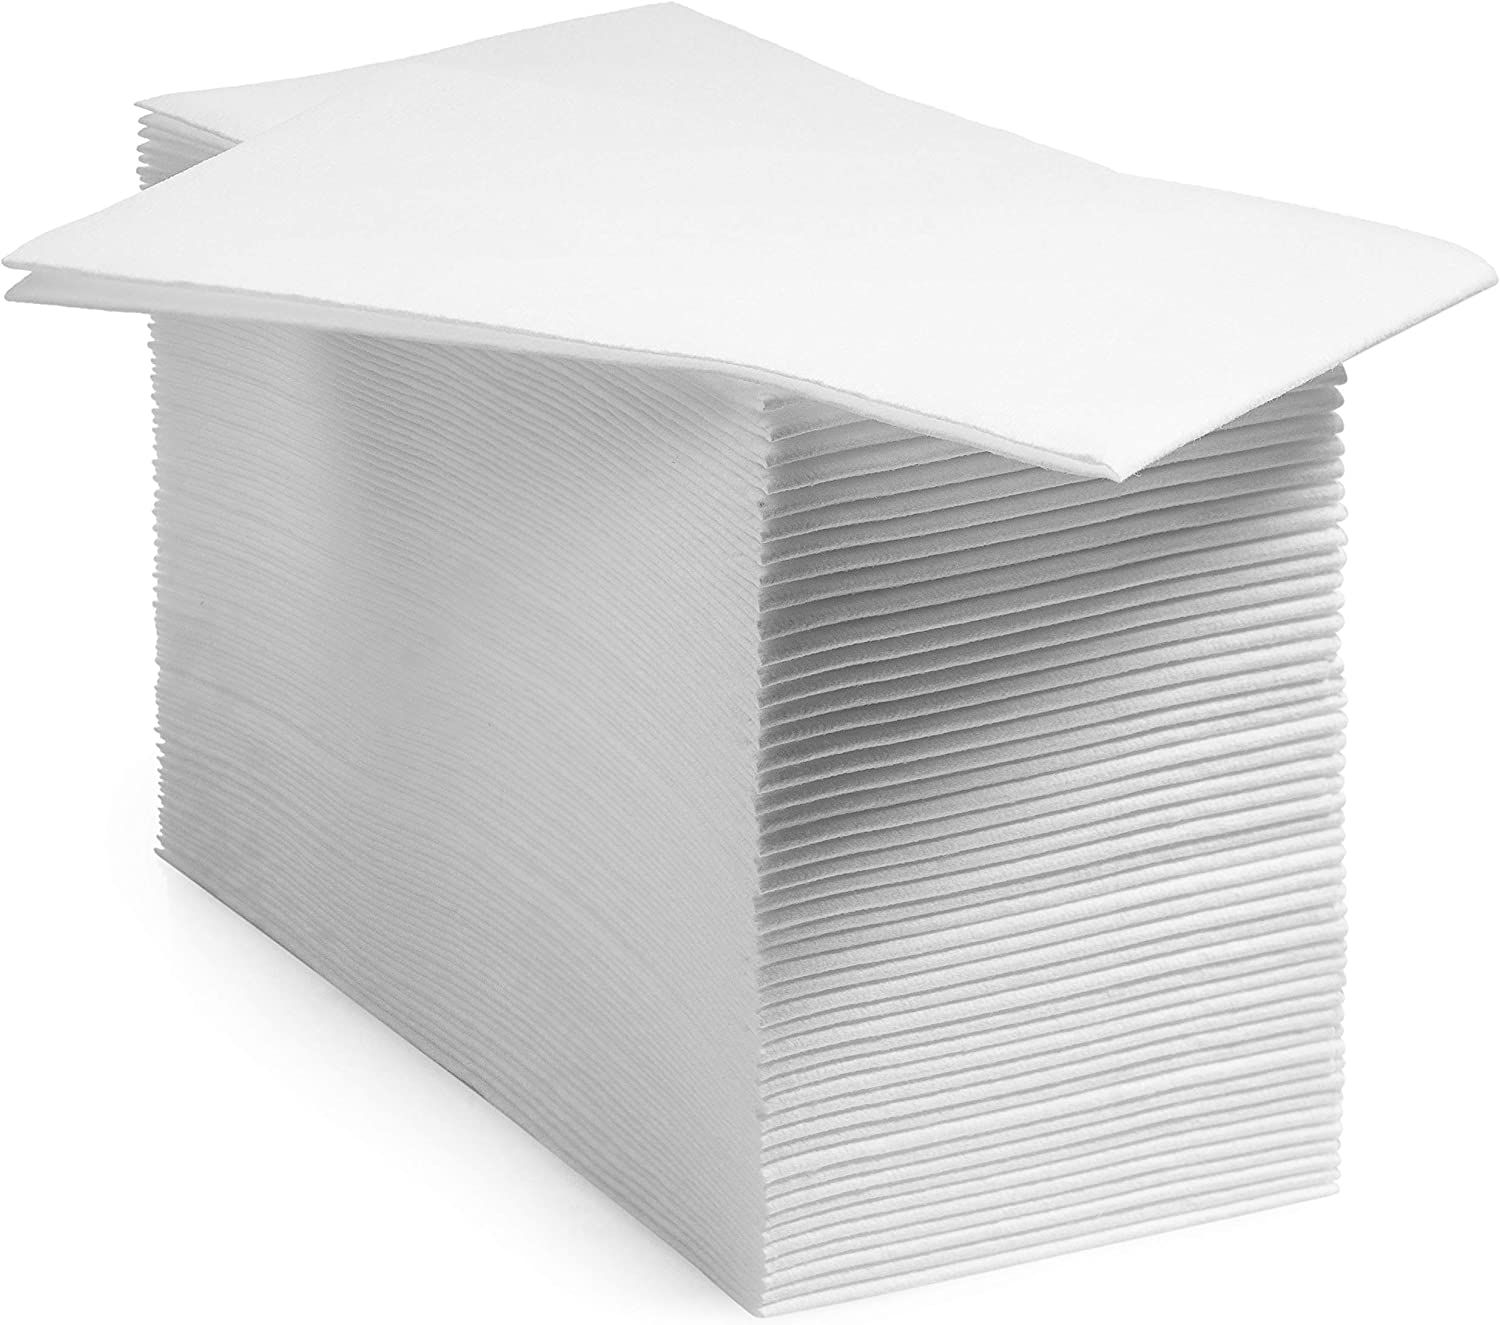 BloominGoods Disposable Linen-Feel Guest Hand Towels Cloth-Like Paper Napkins, White, Pack of 1000 (Bulk Packaging)